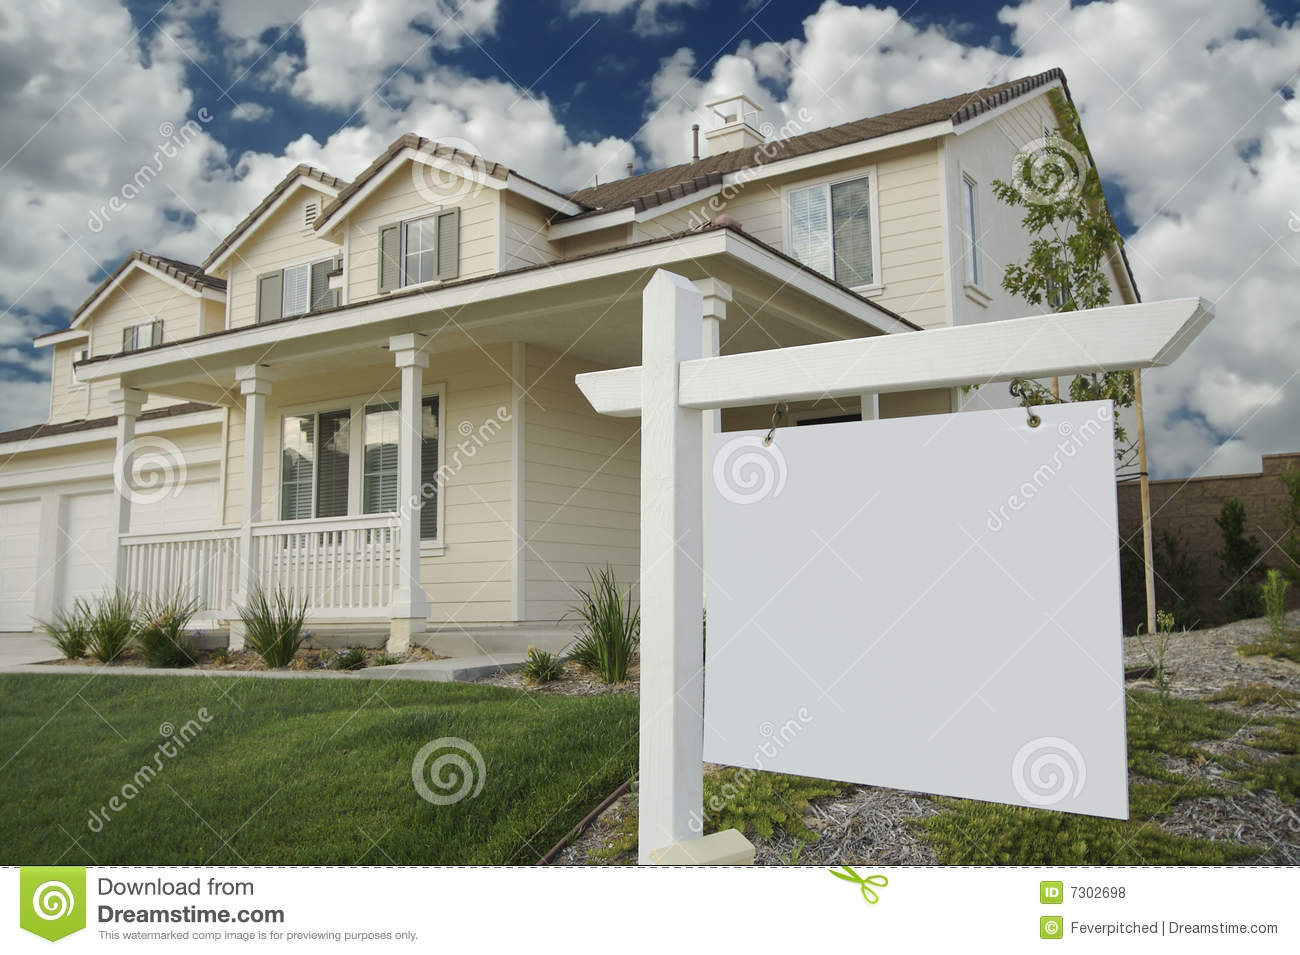 511 045 Real Estate Photos Free Royalty Free Stock Photos From Dreamstime A professional photographer for real estate photography on demand shoot. dreamstime com